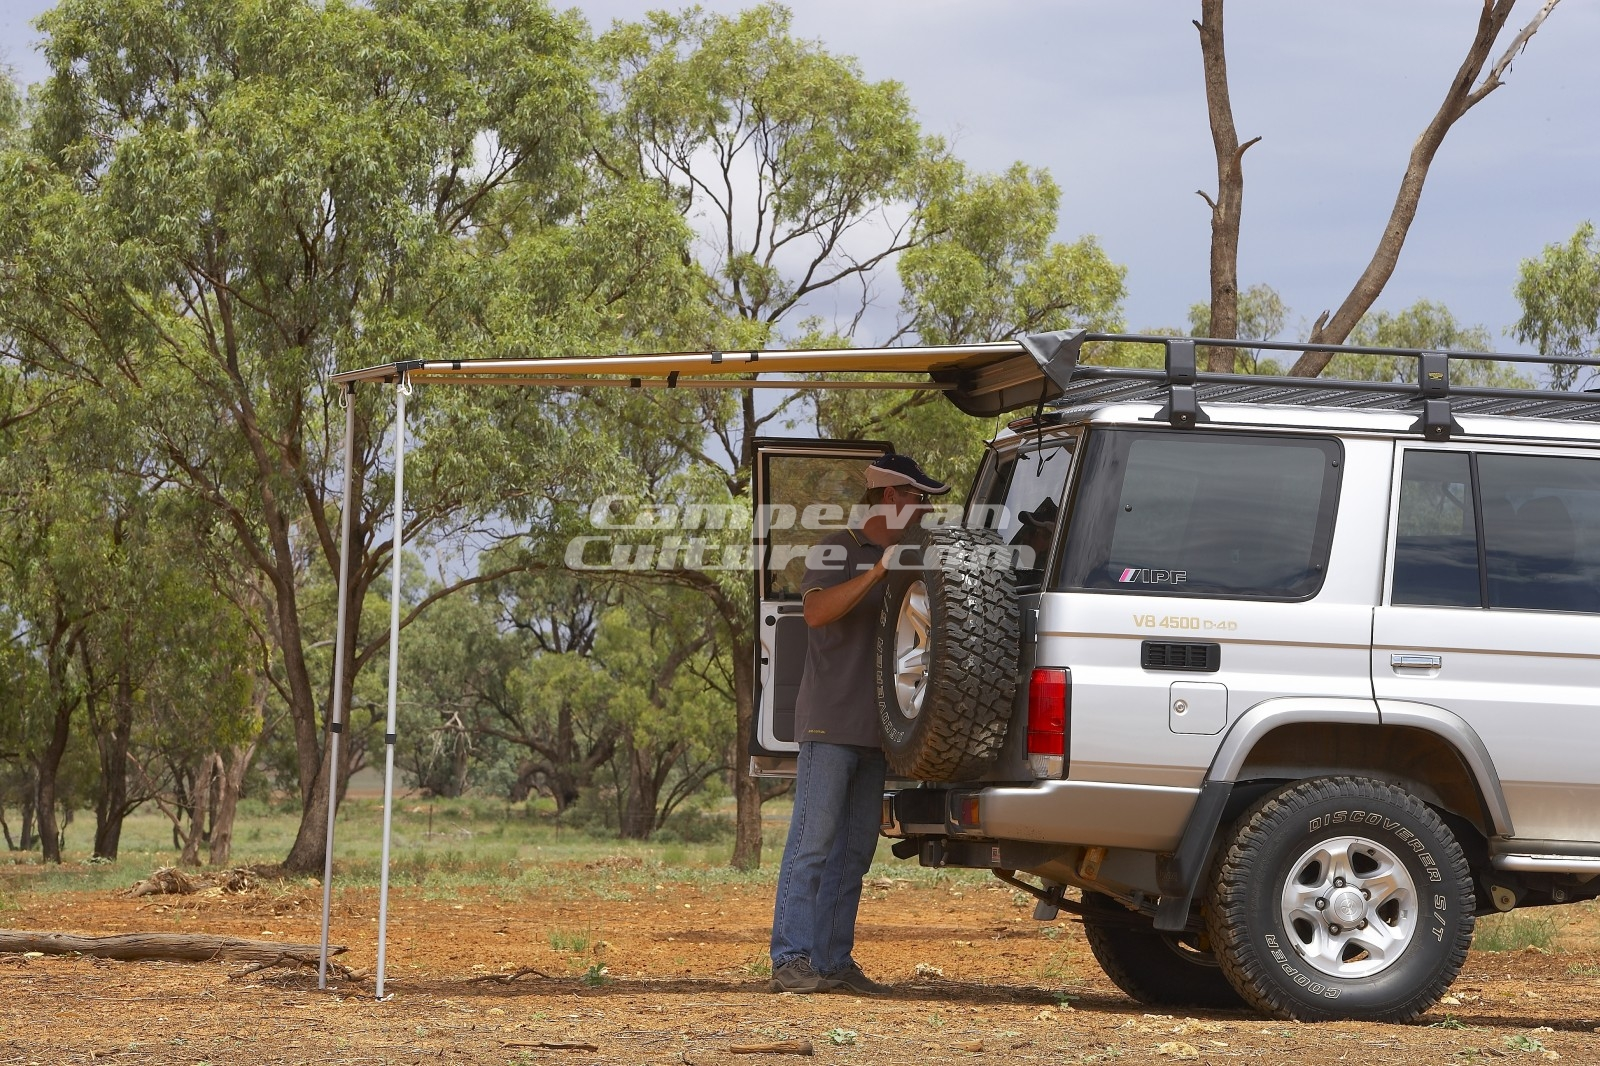 ARB 1250X2100MM AWNING For VW Amarok Roof Rack